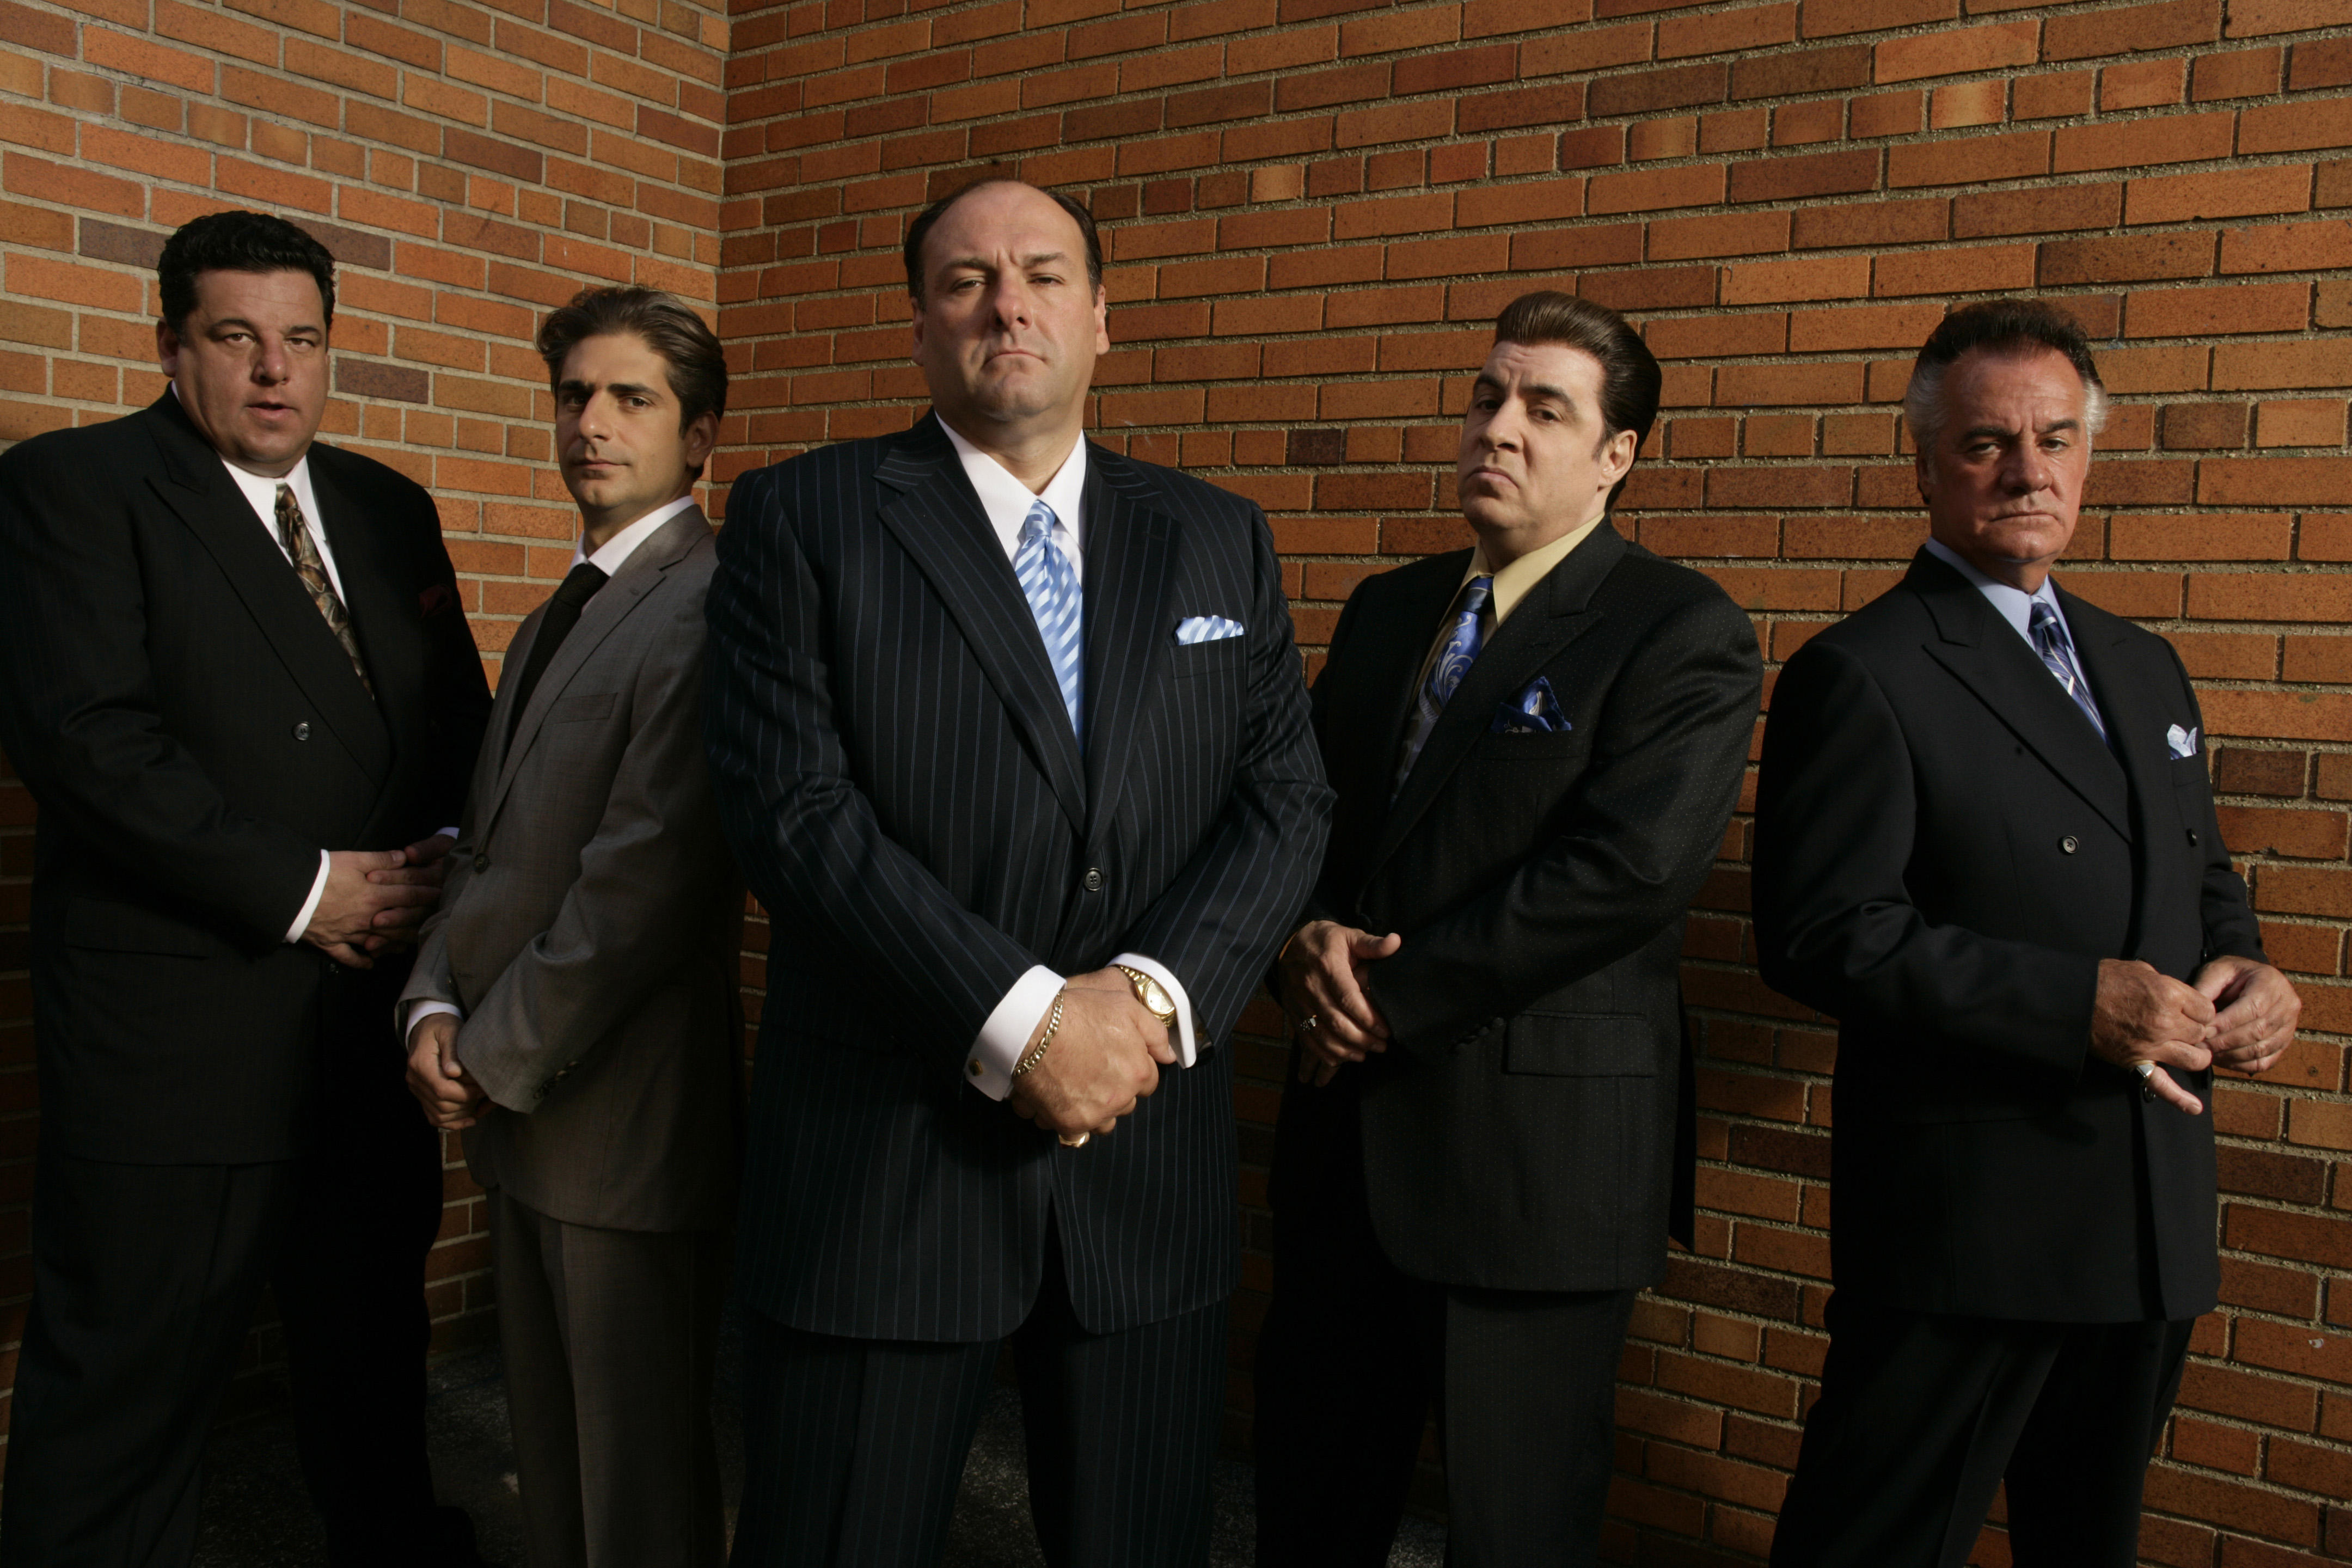 The sopranos crime drama mafia television hbo f wallpaper - Sopranos wallpaper ...